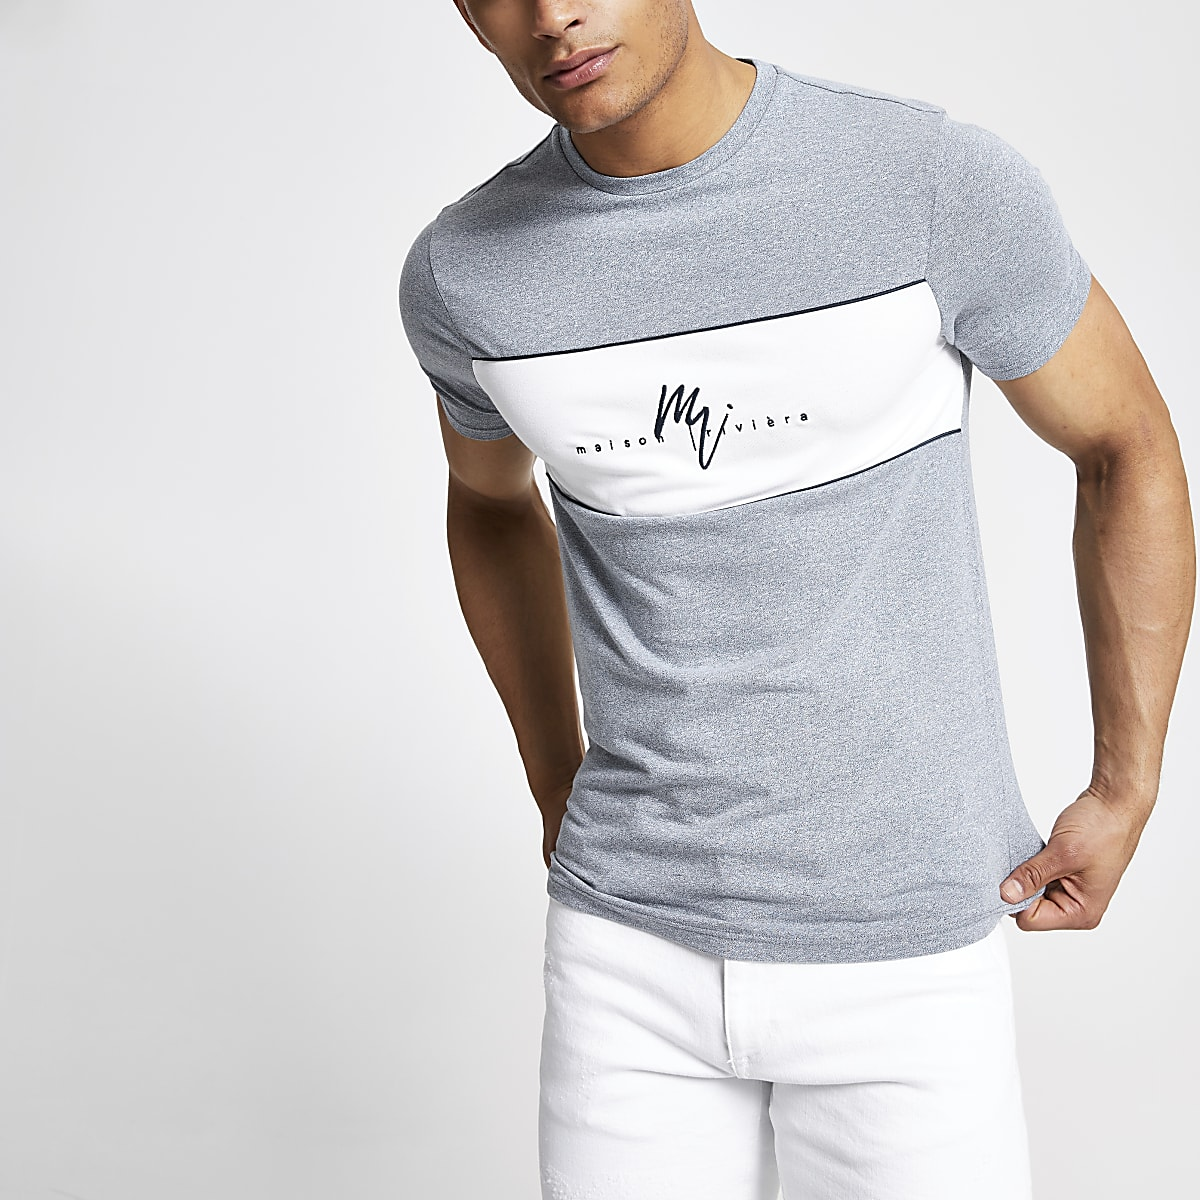 Blue Maison Riviera muscle fit T-shirt